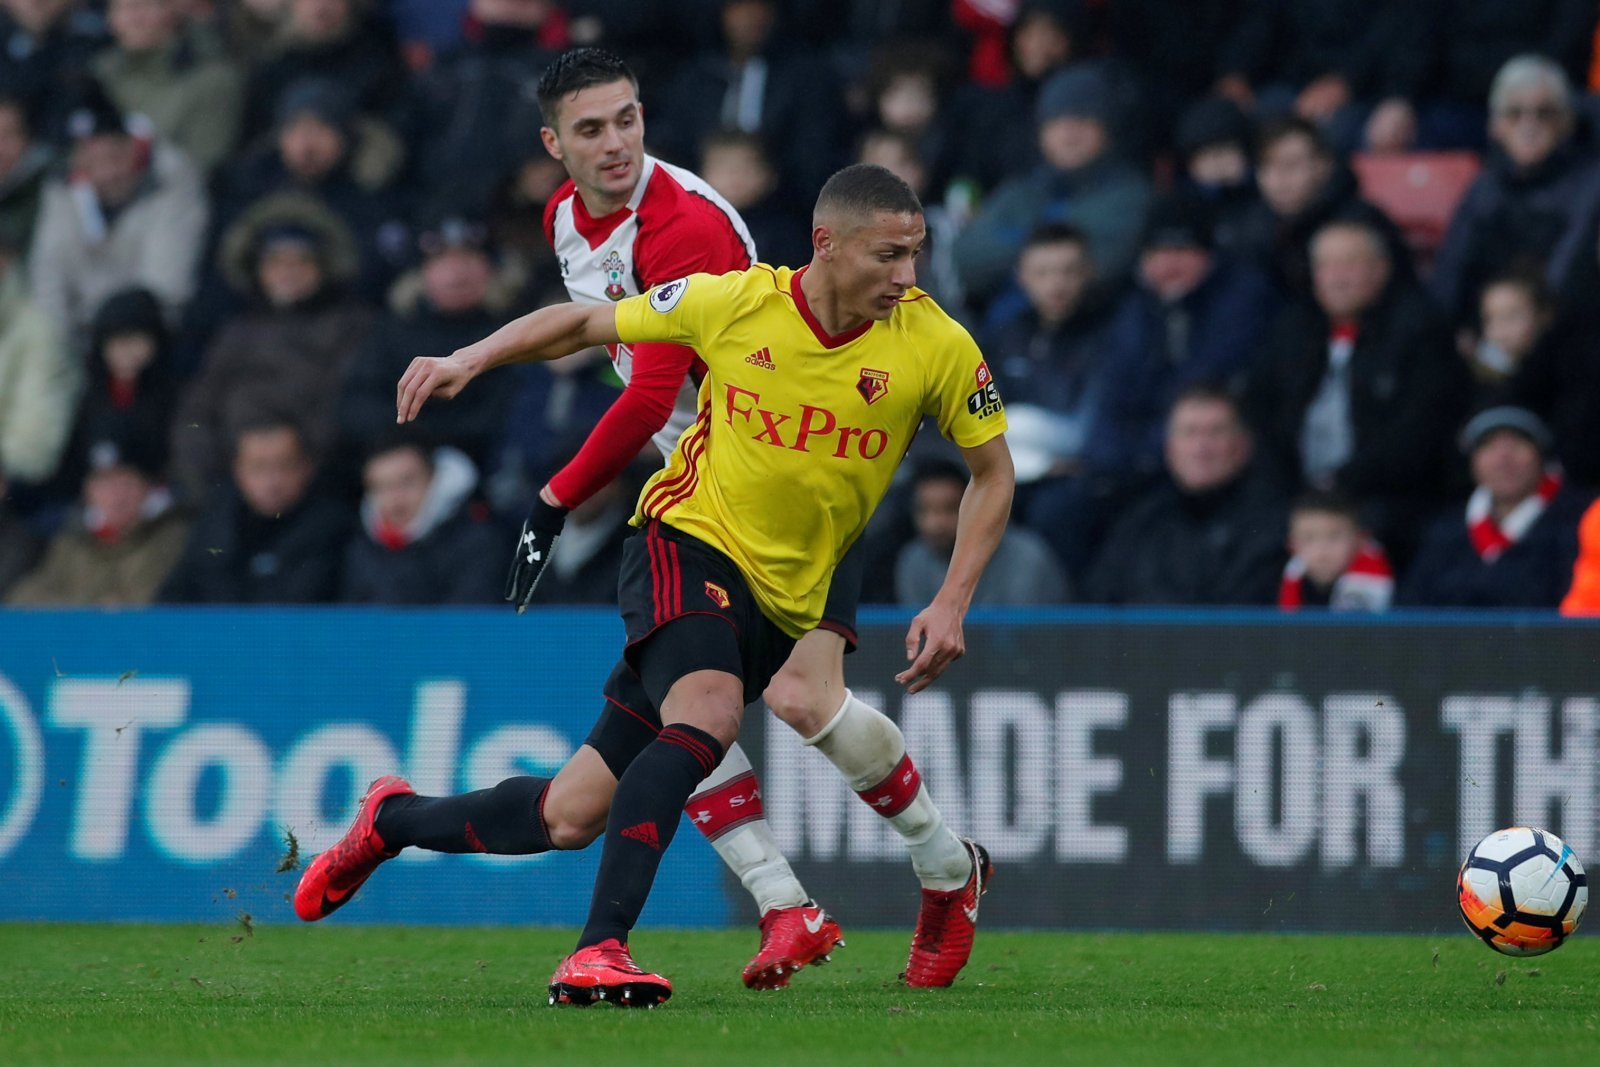 Landing Richarlison could be Marco Silva's first big mistake as Everton manager